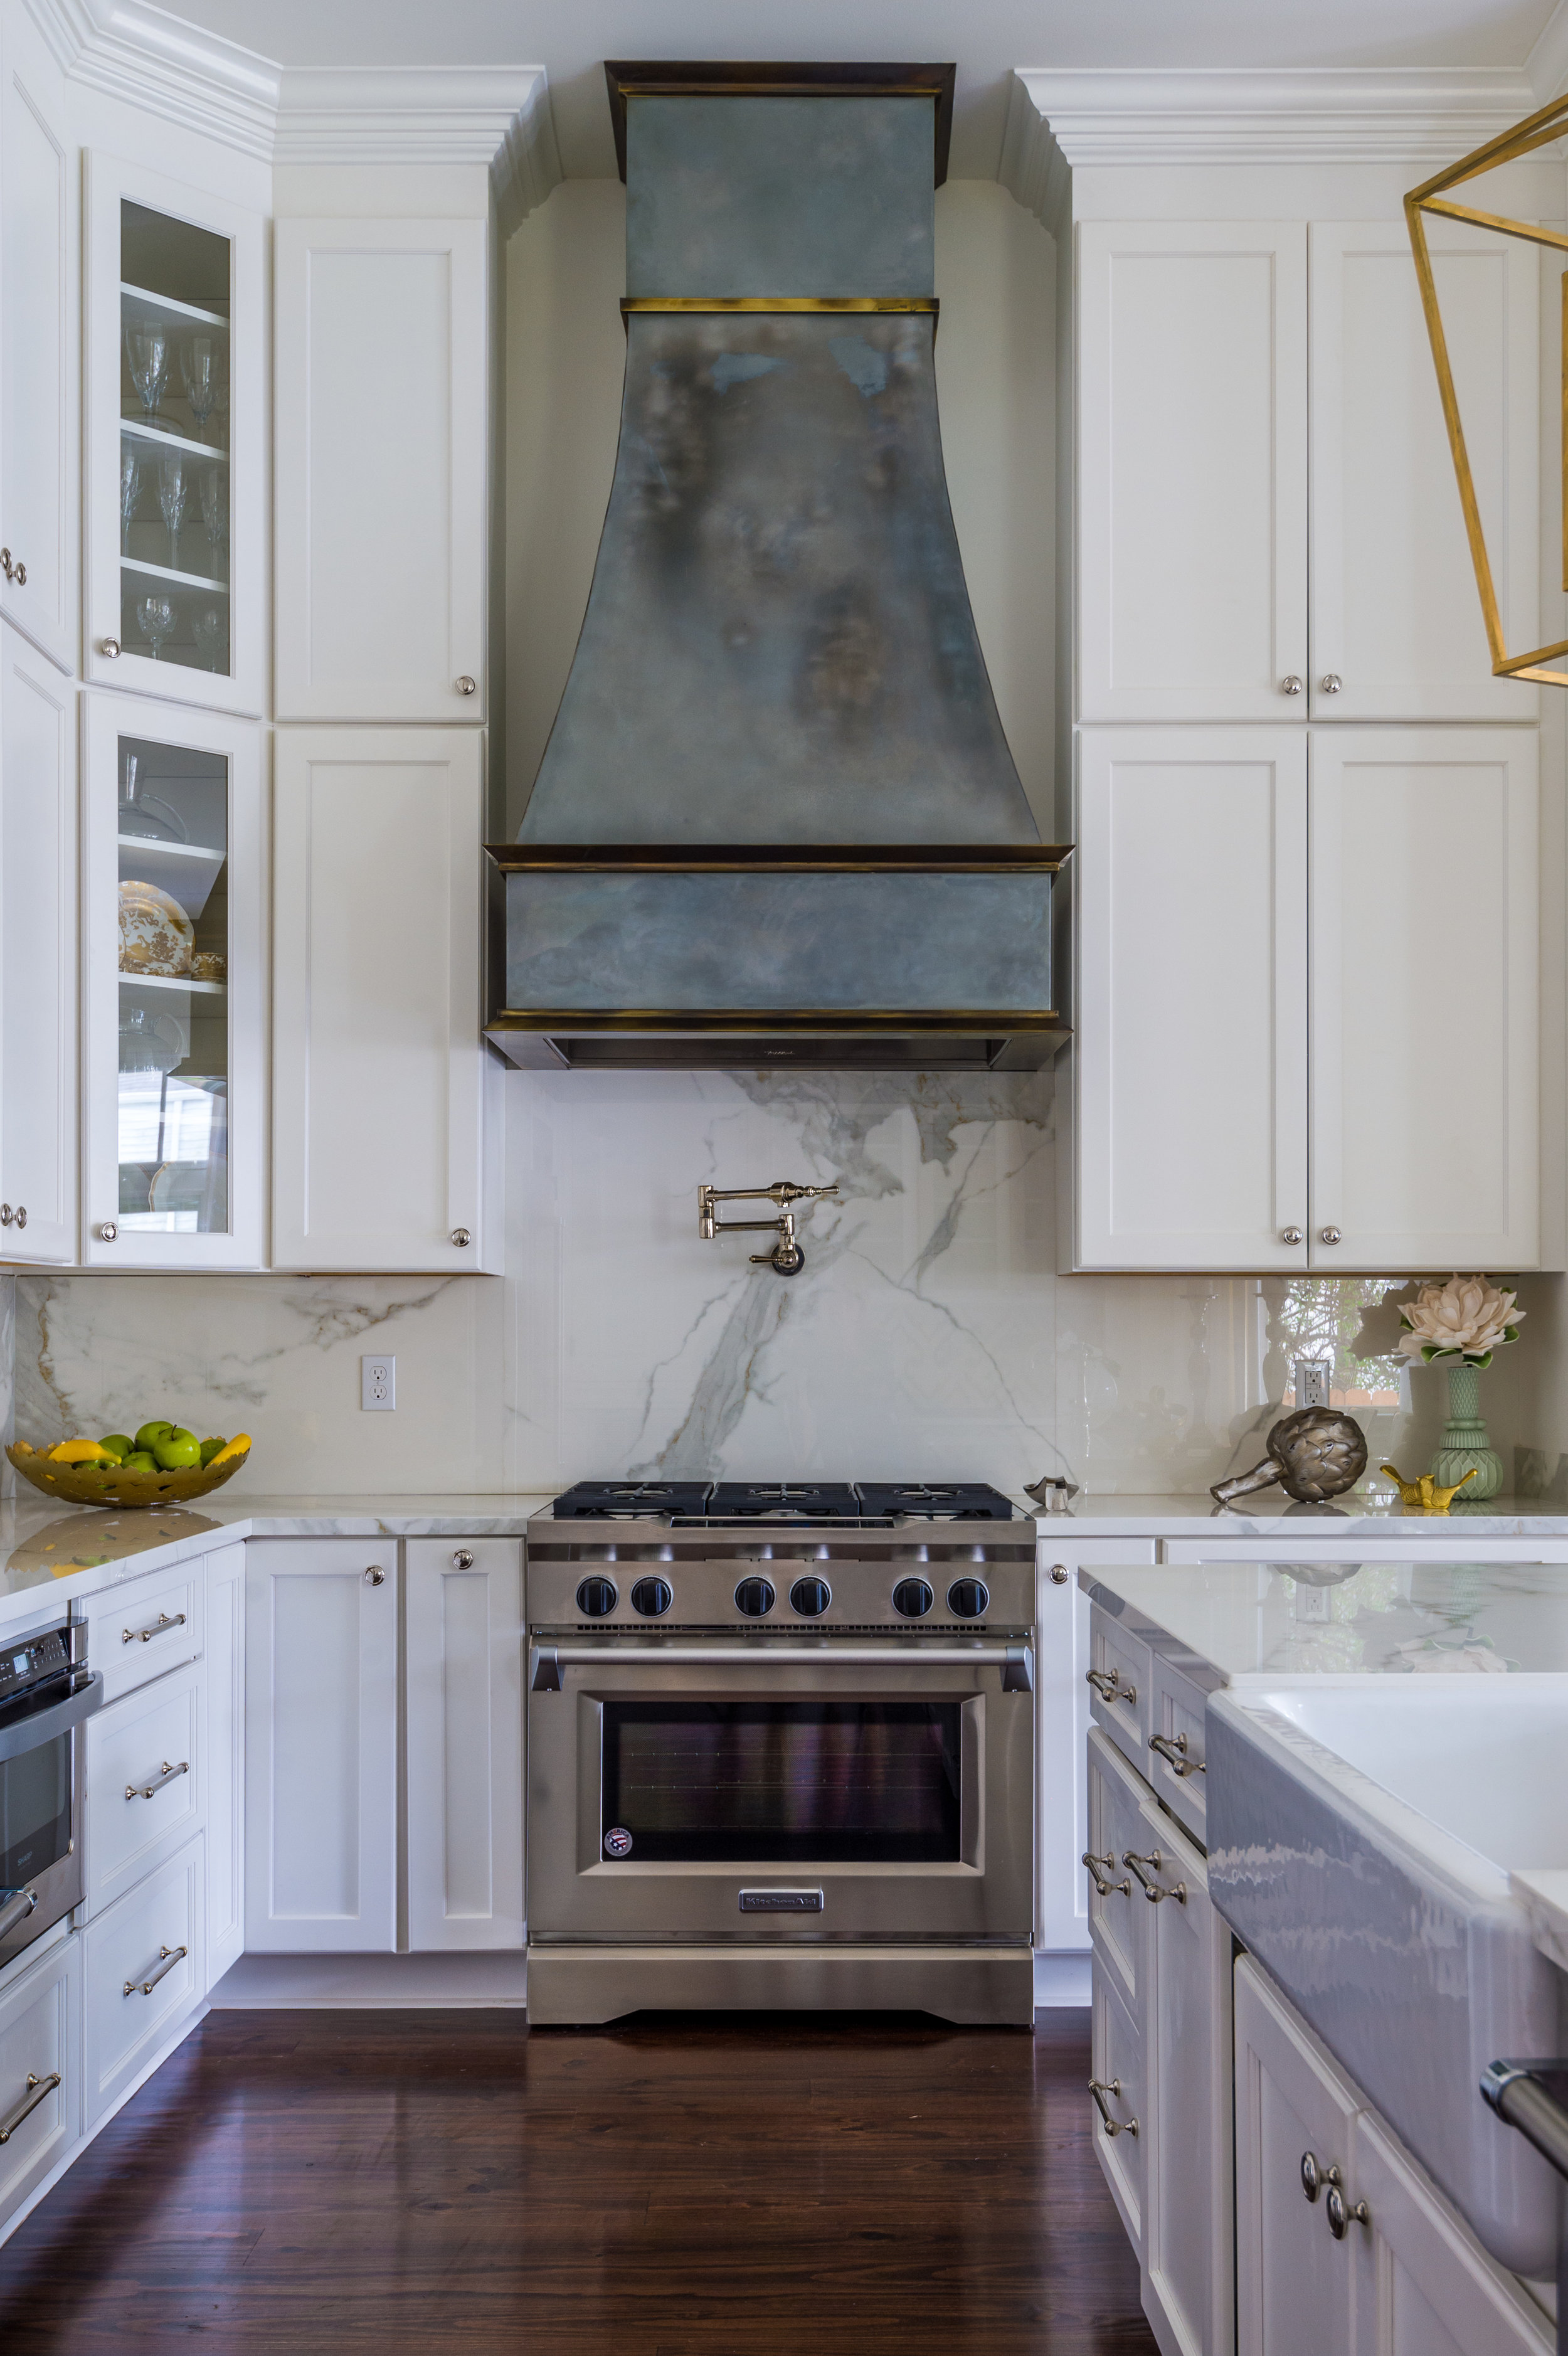 khb interiors kitchens new orleans metairie interior designer paint color consultation buy furniture new orleans